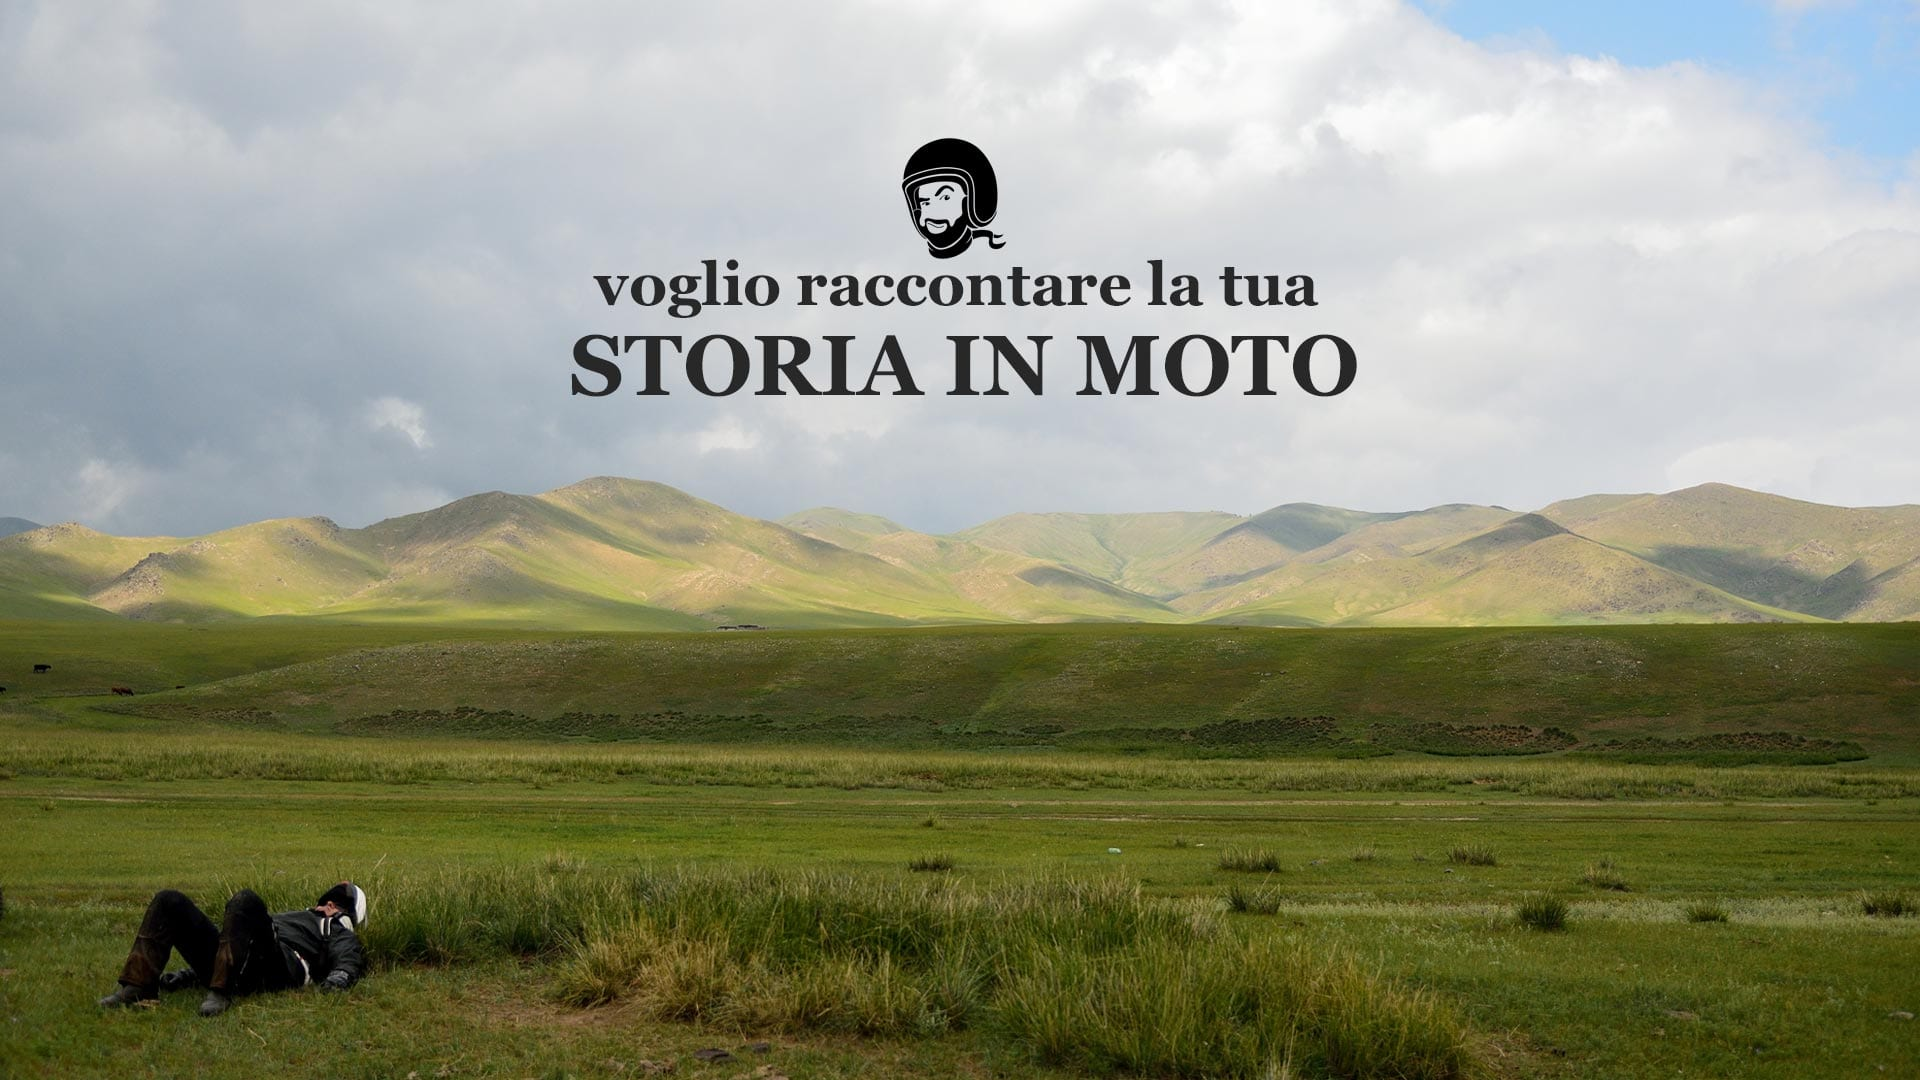 storie in moto - motoreetto wants you